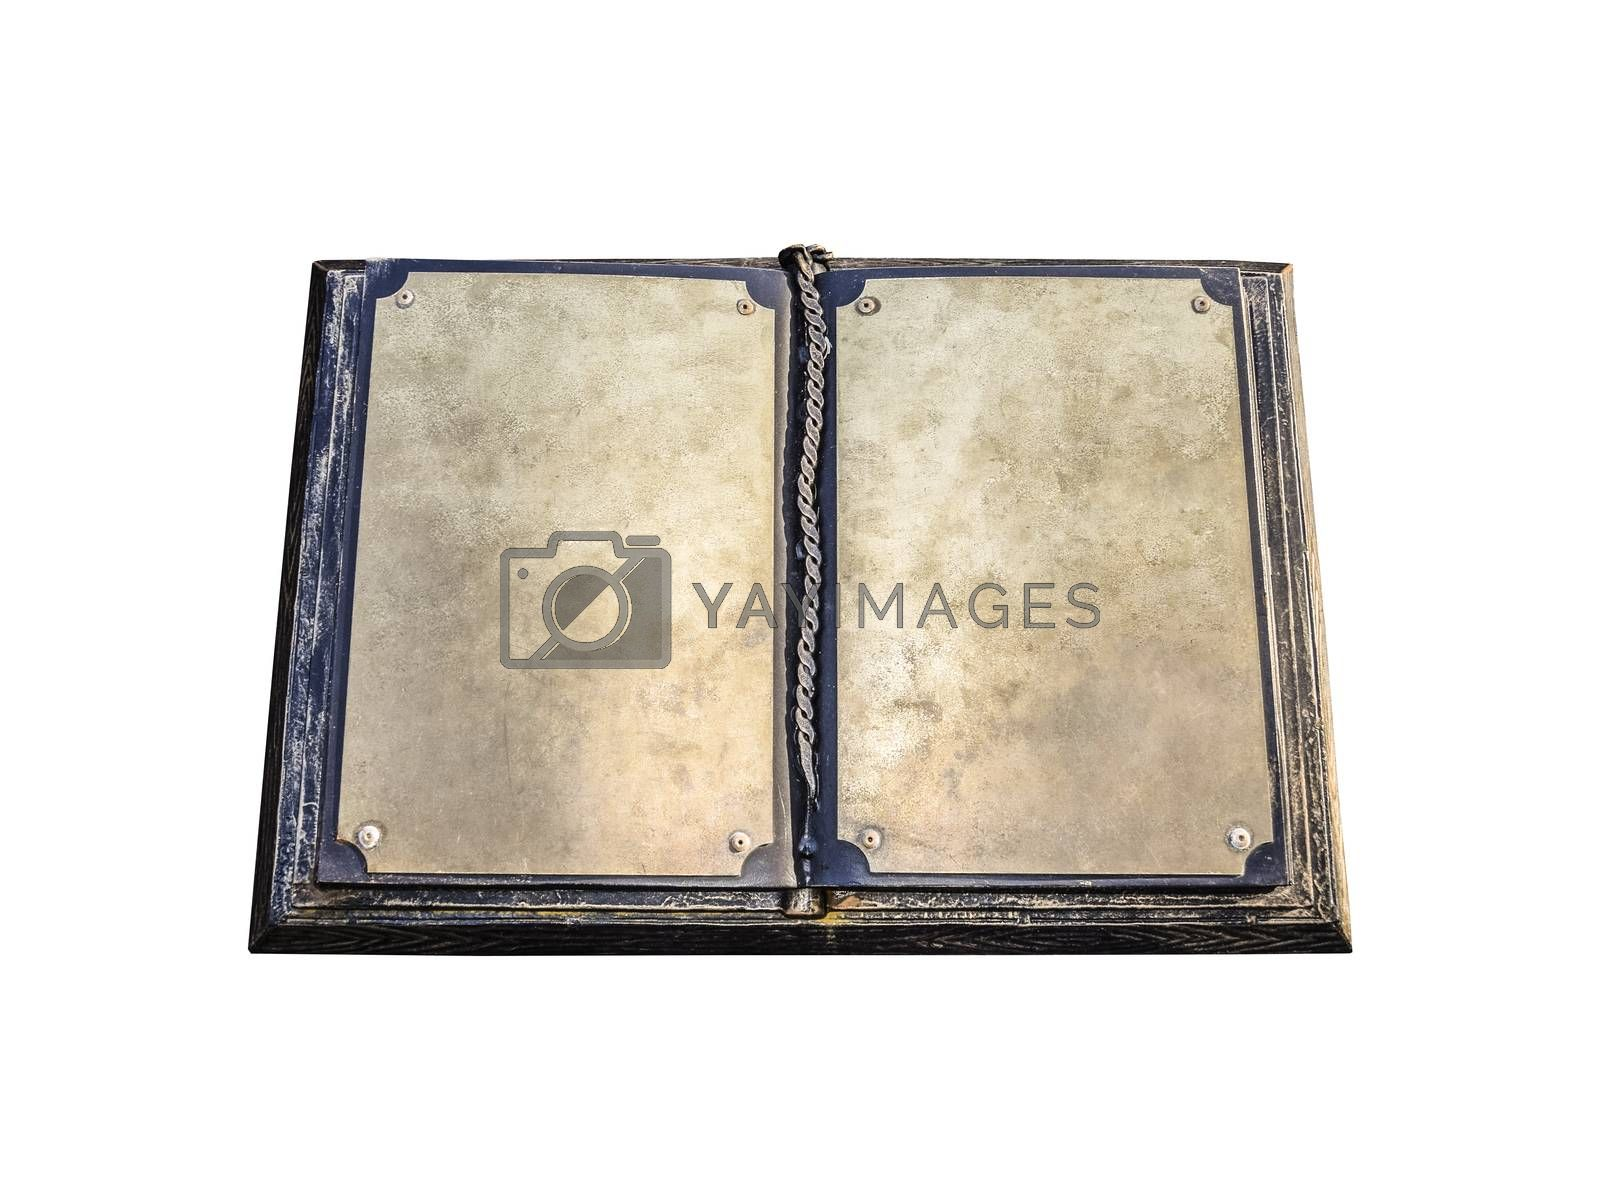 An old metal book. Blank pages of an old book.